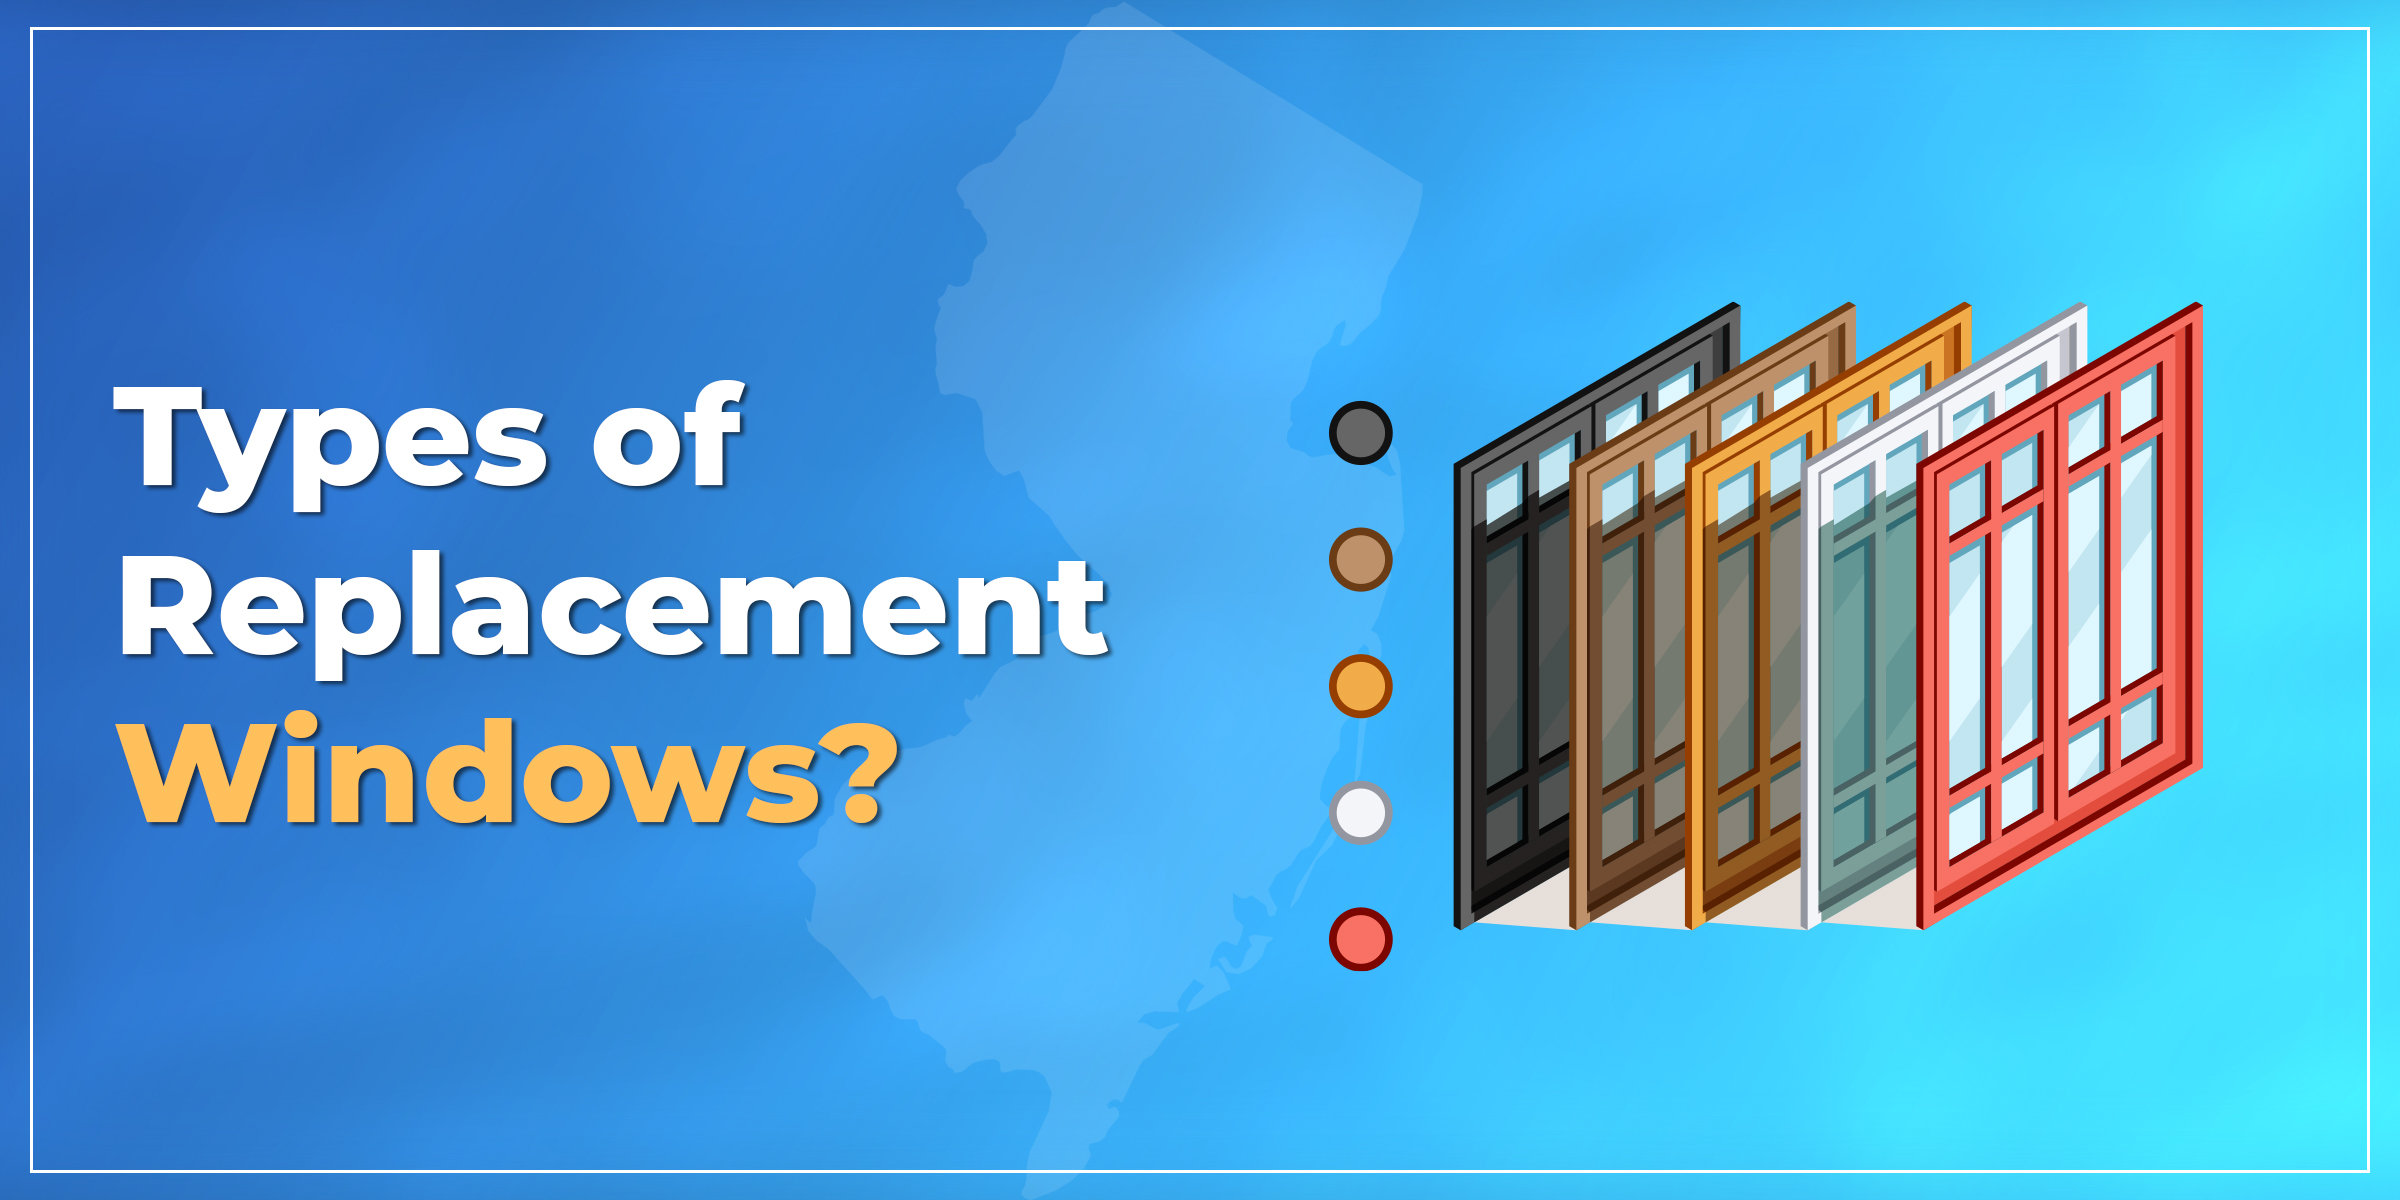 Types of Replacement Windows in NJ